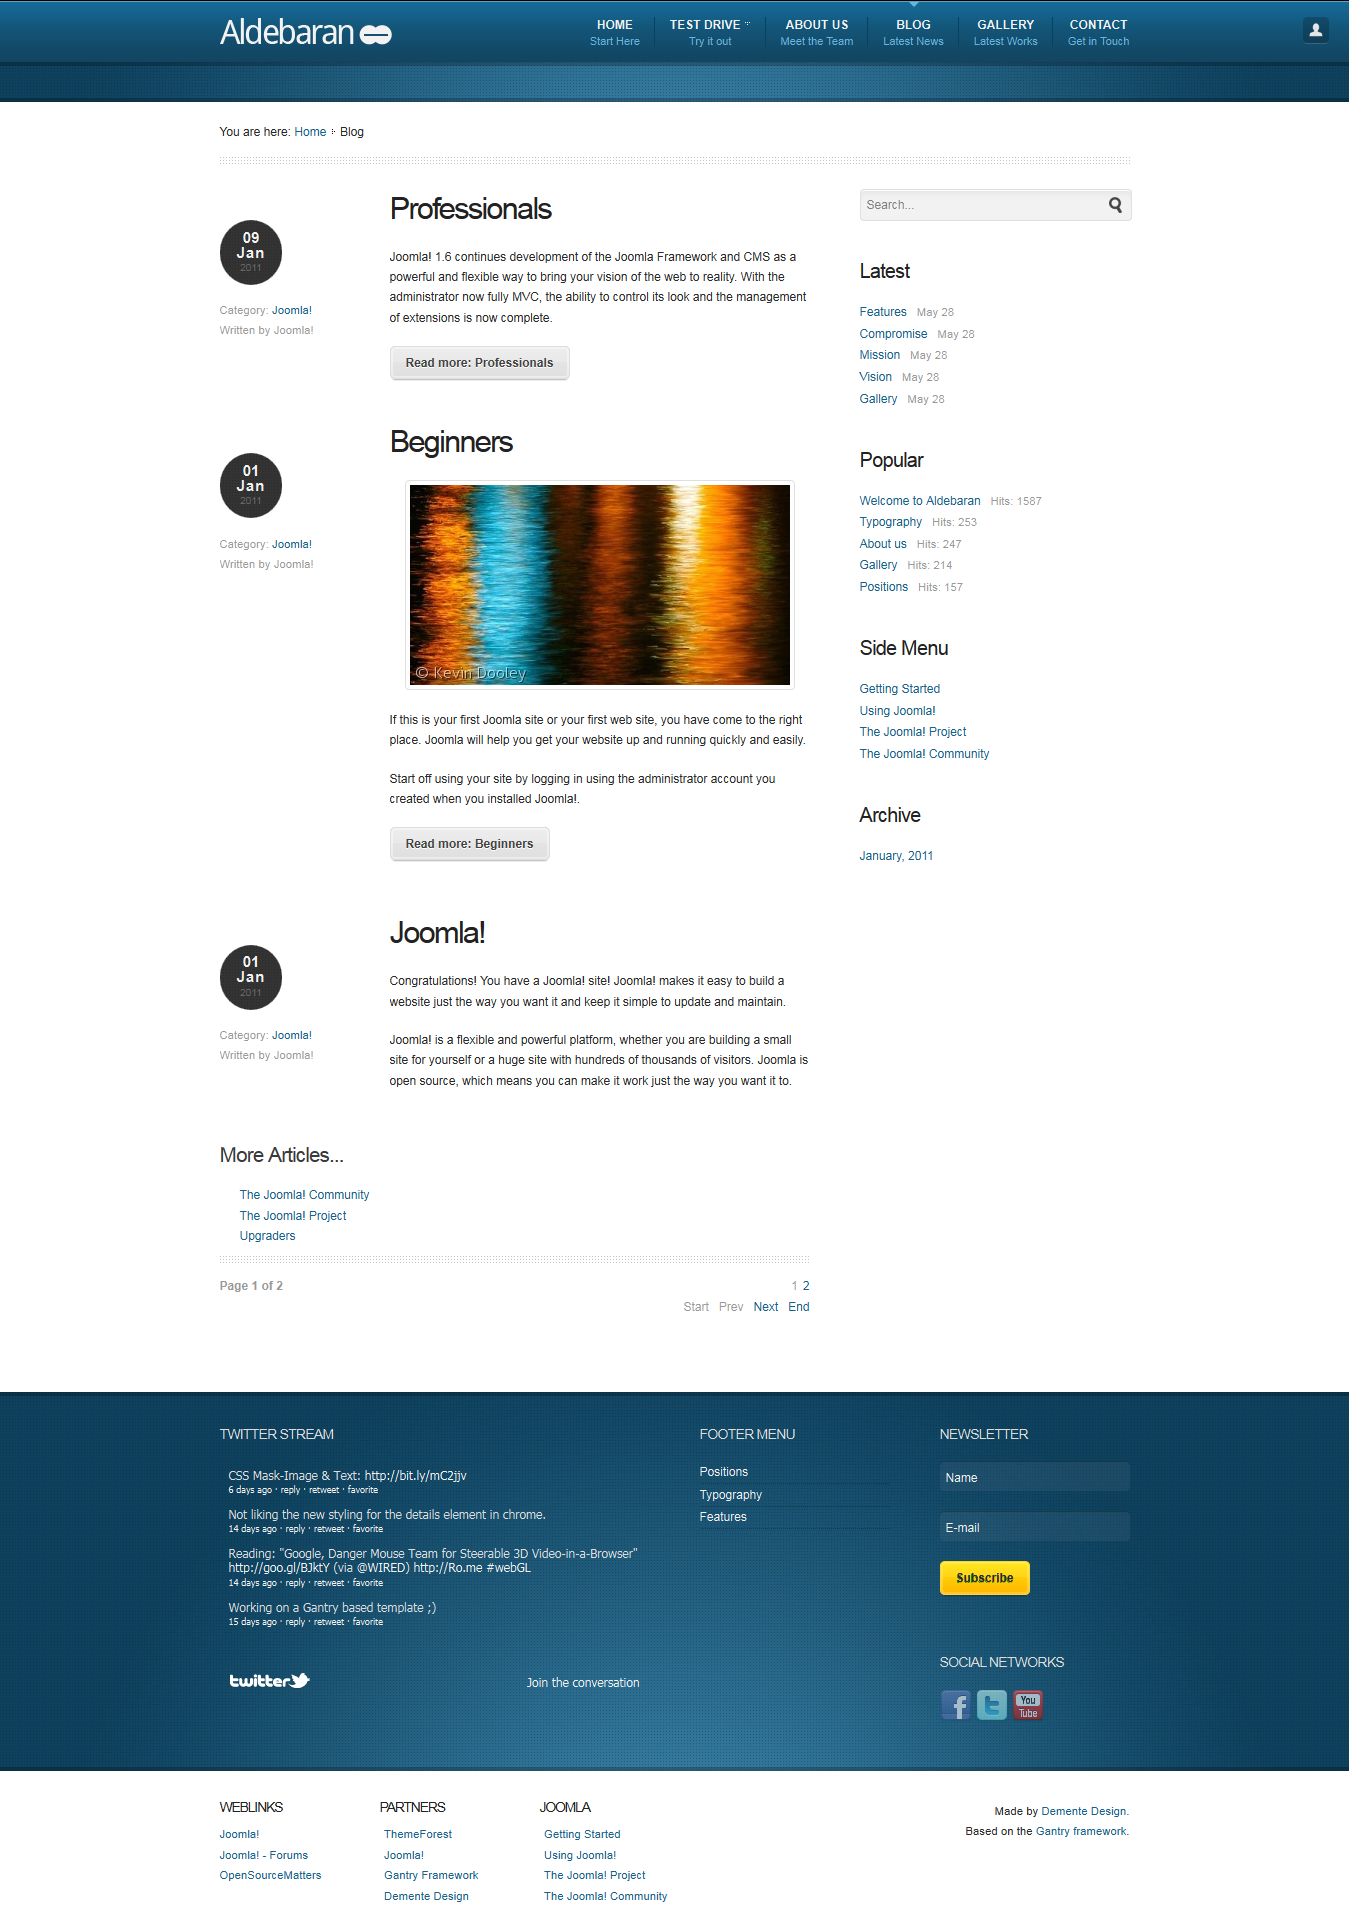 Aldebaran - Joomla 1.6 Business Template